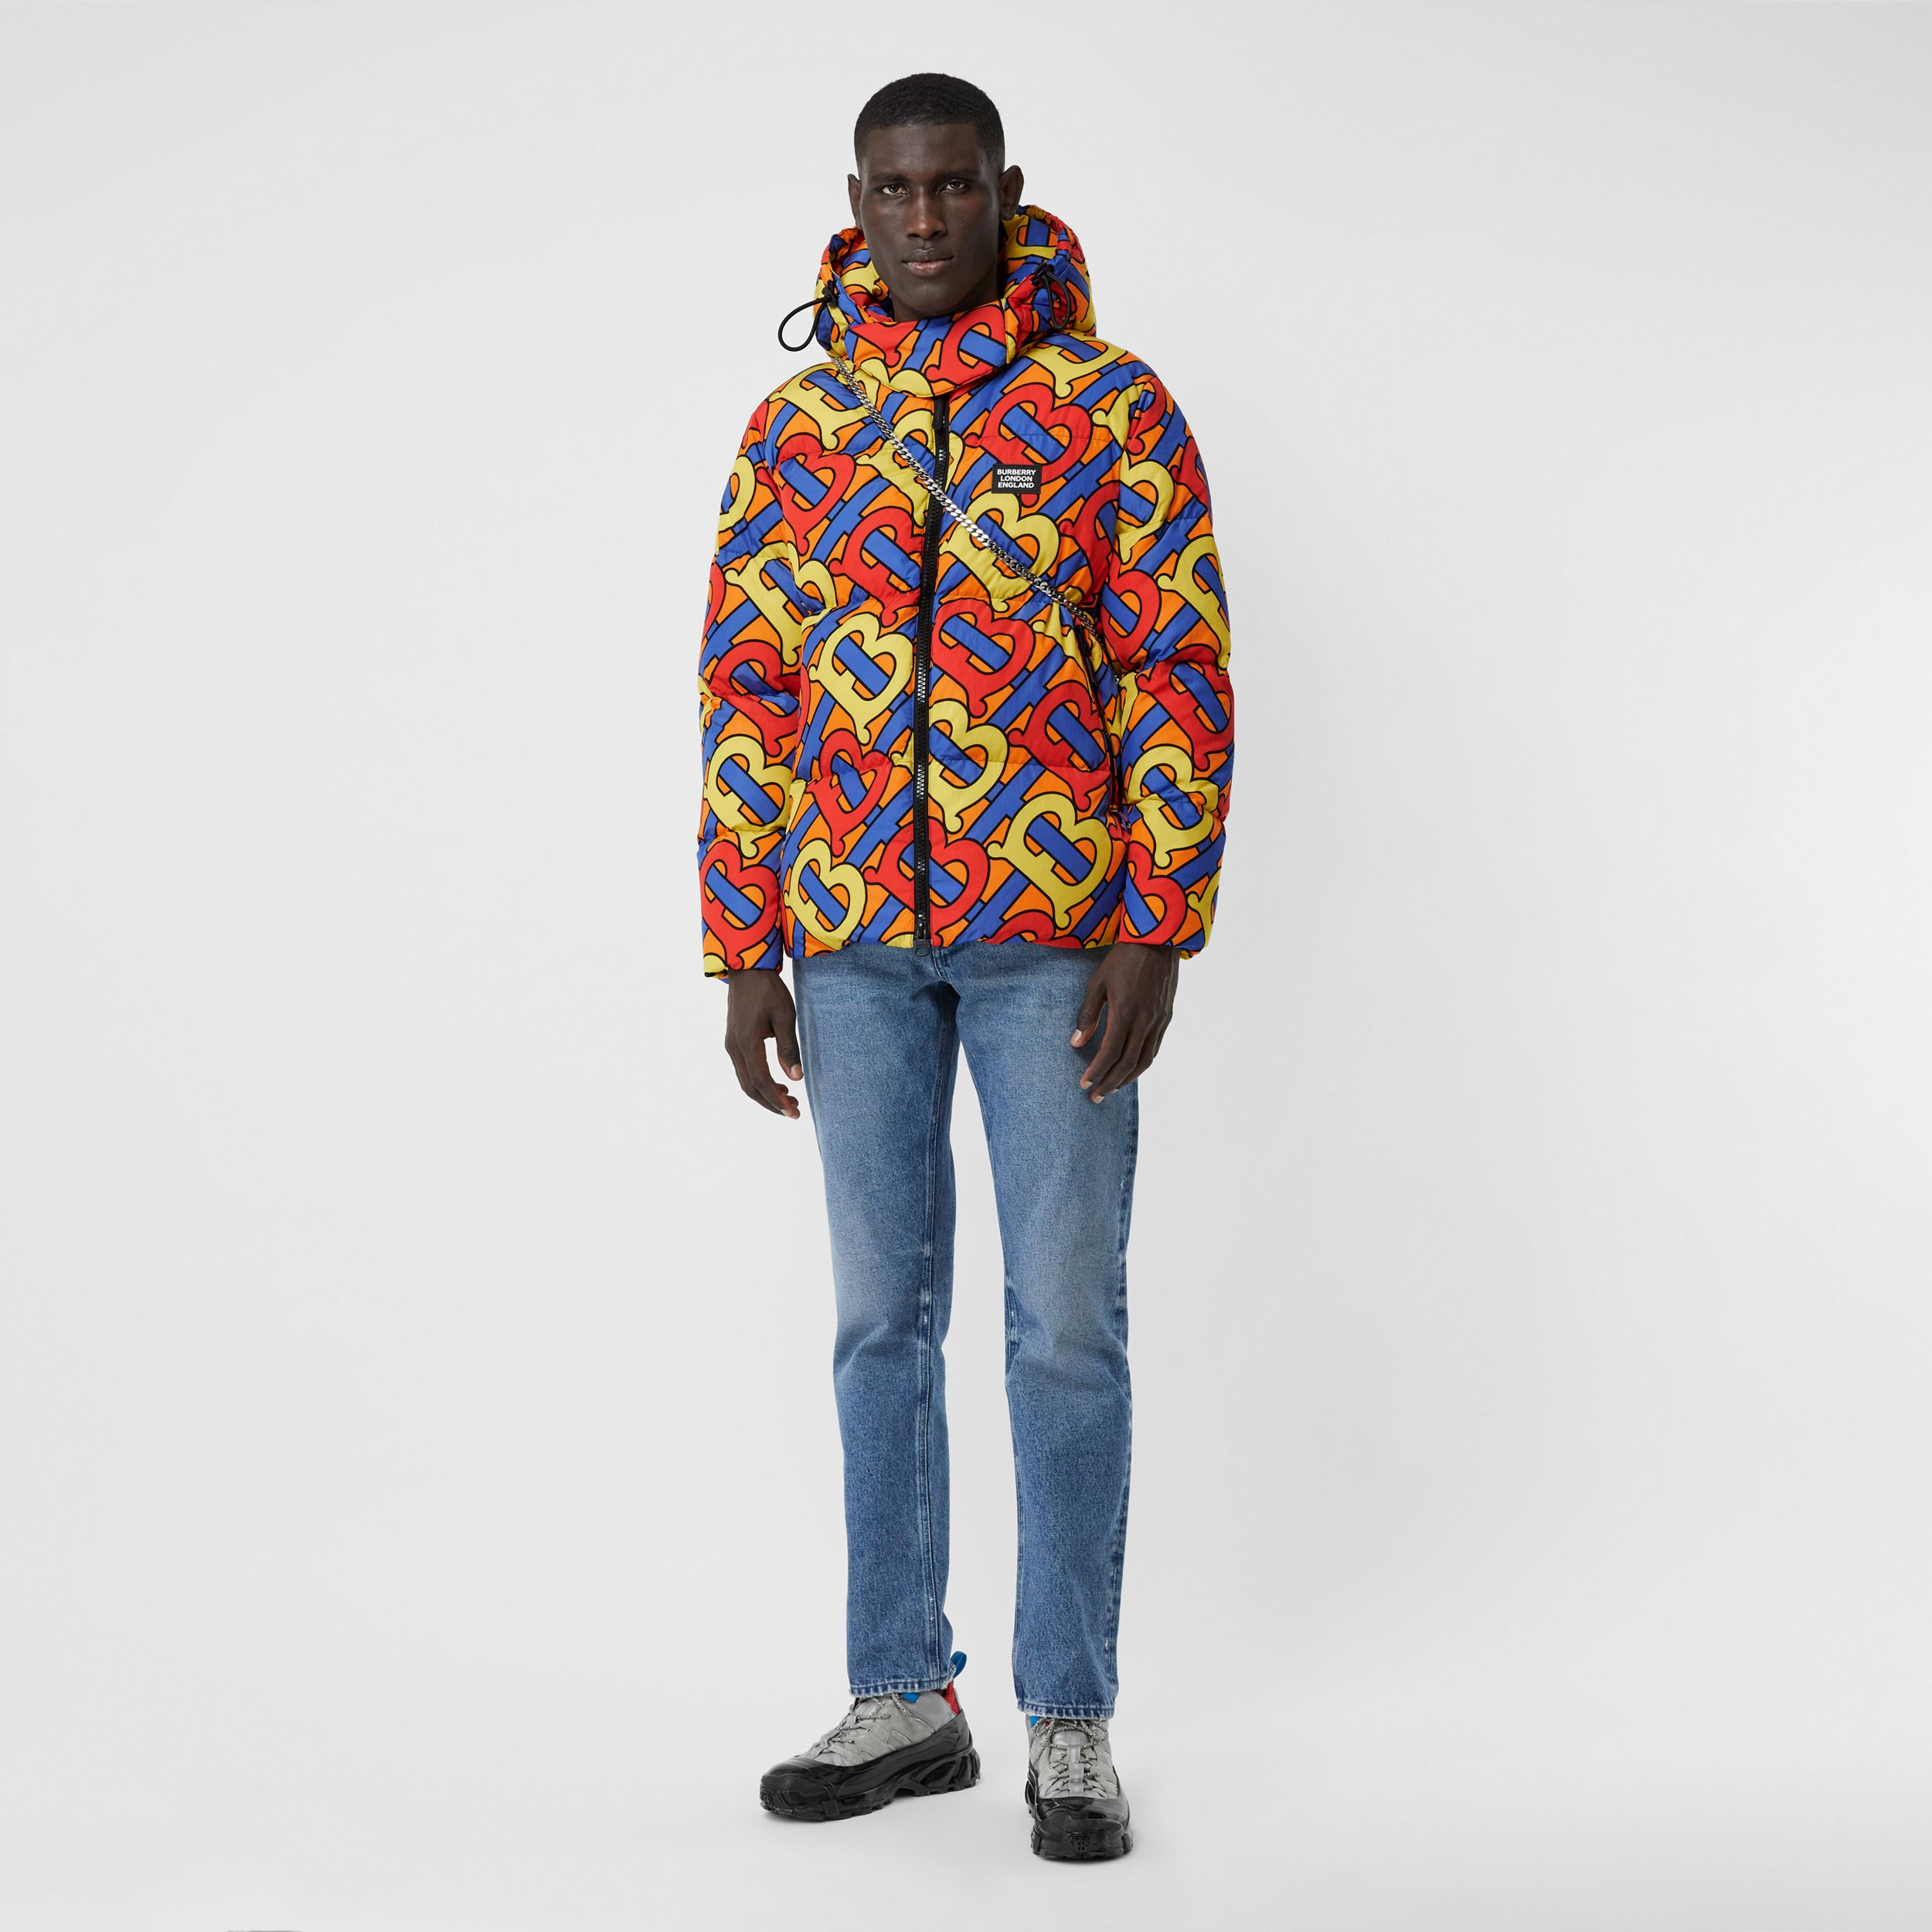 Monogram Print Puffer Jacket in Multicolour | Burberry - 4